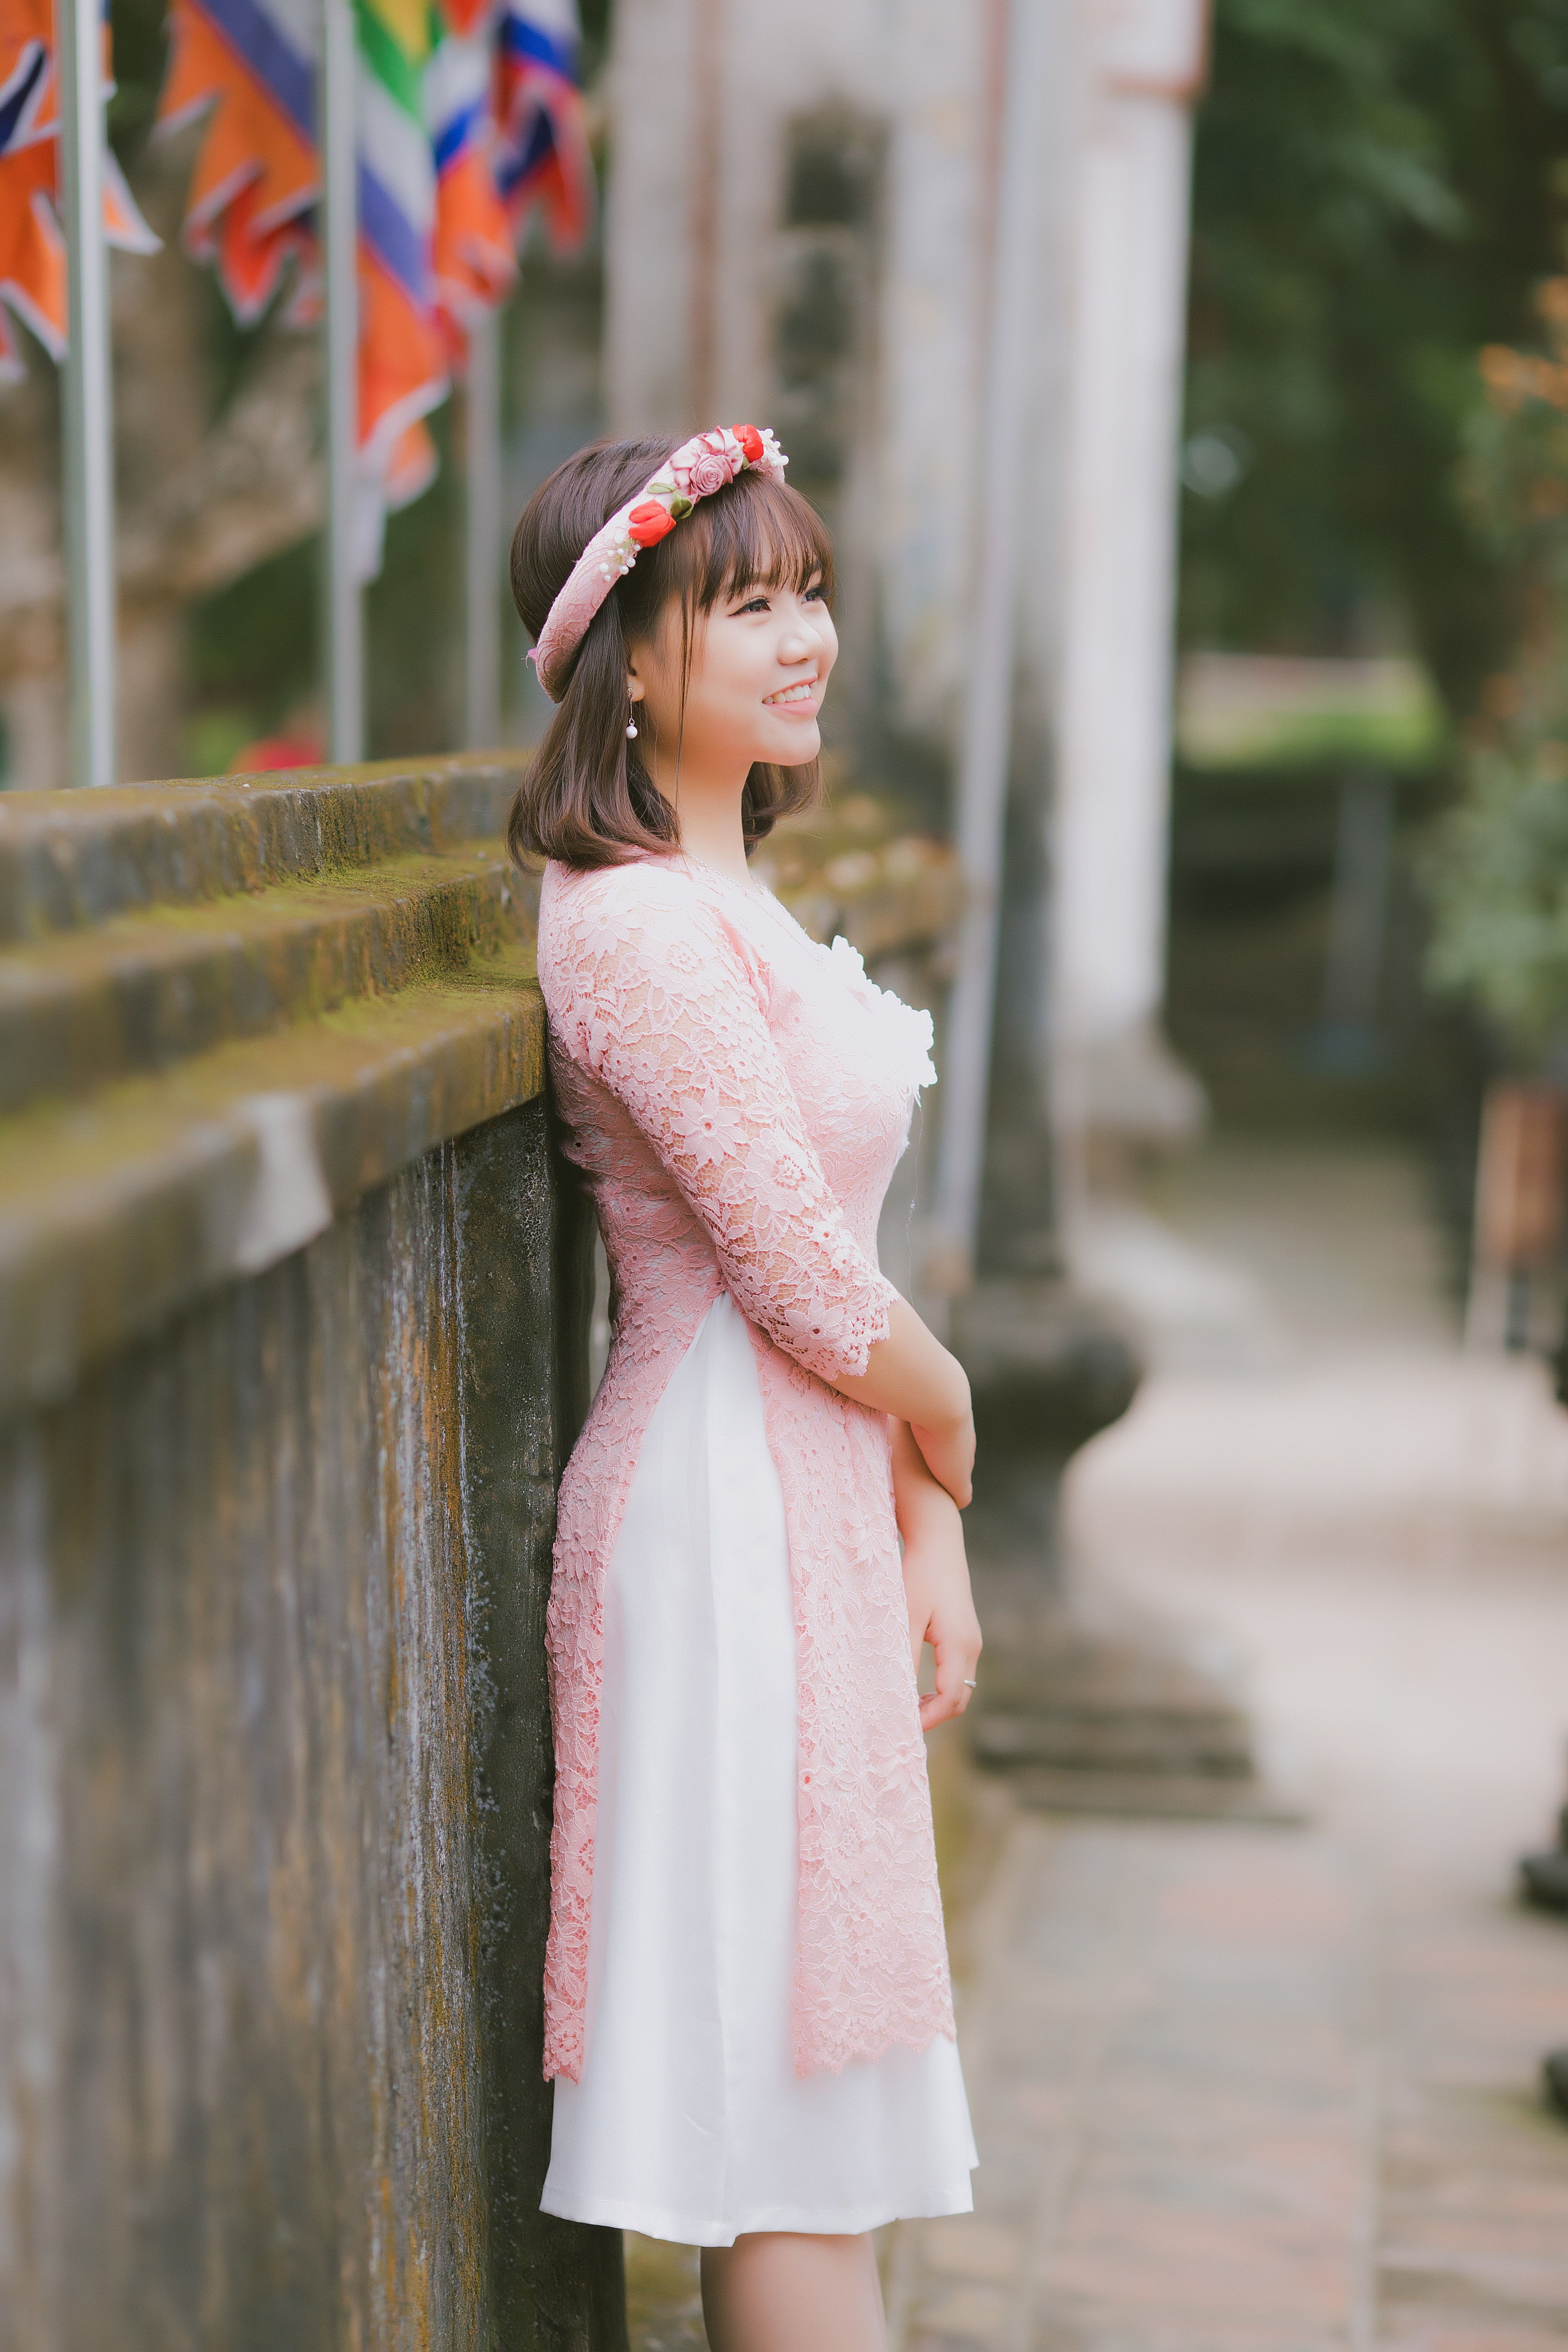 smiling woman in pink floral dress